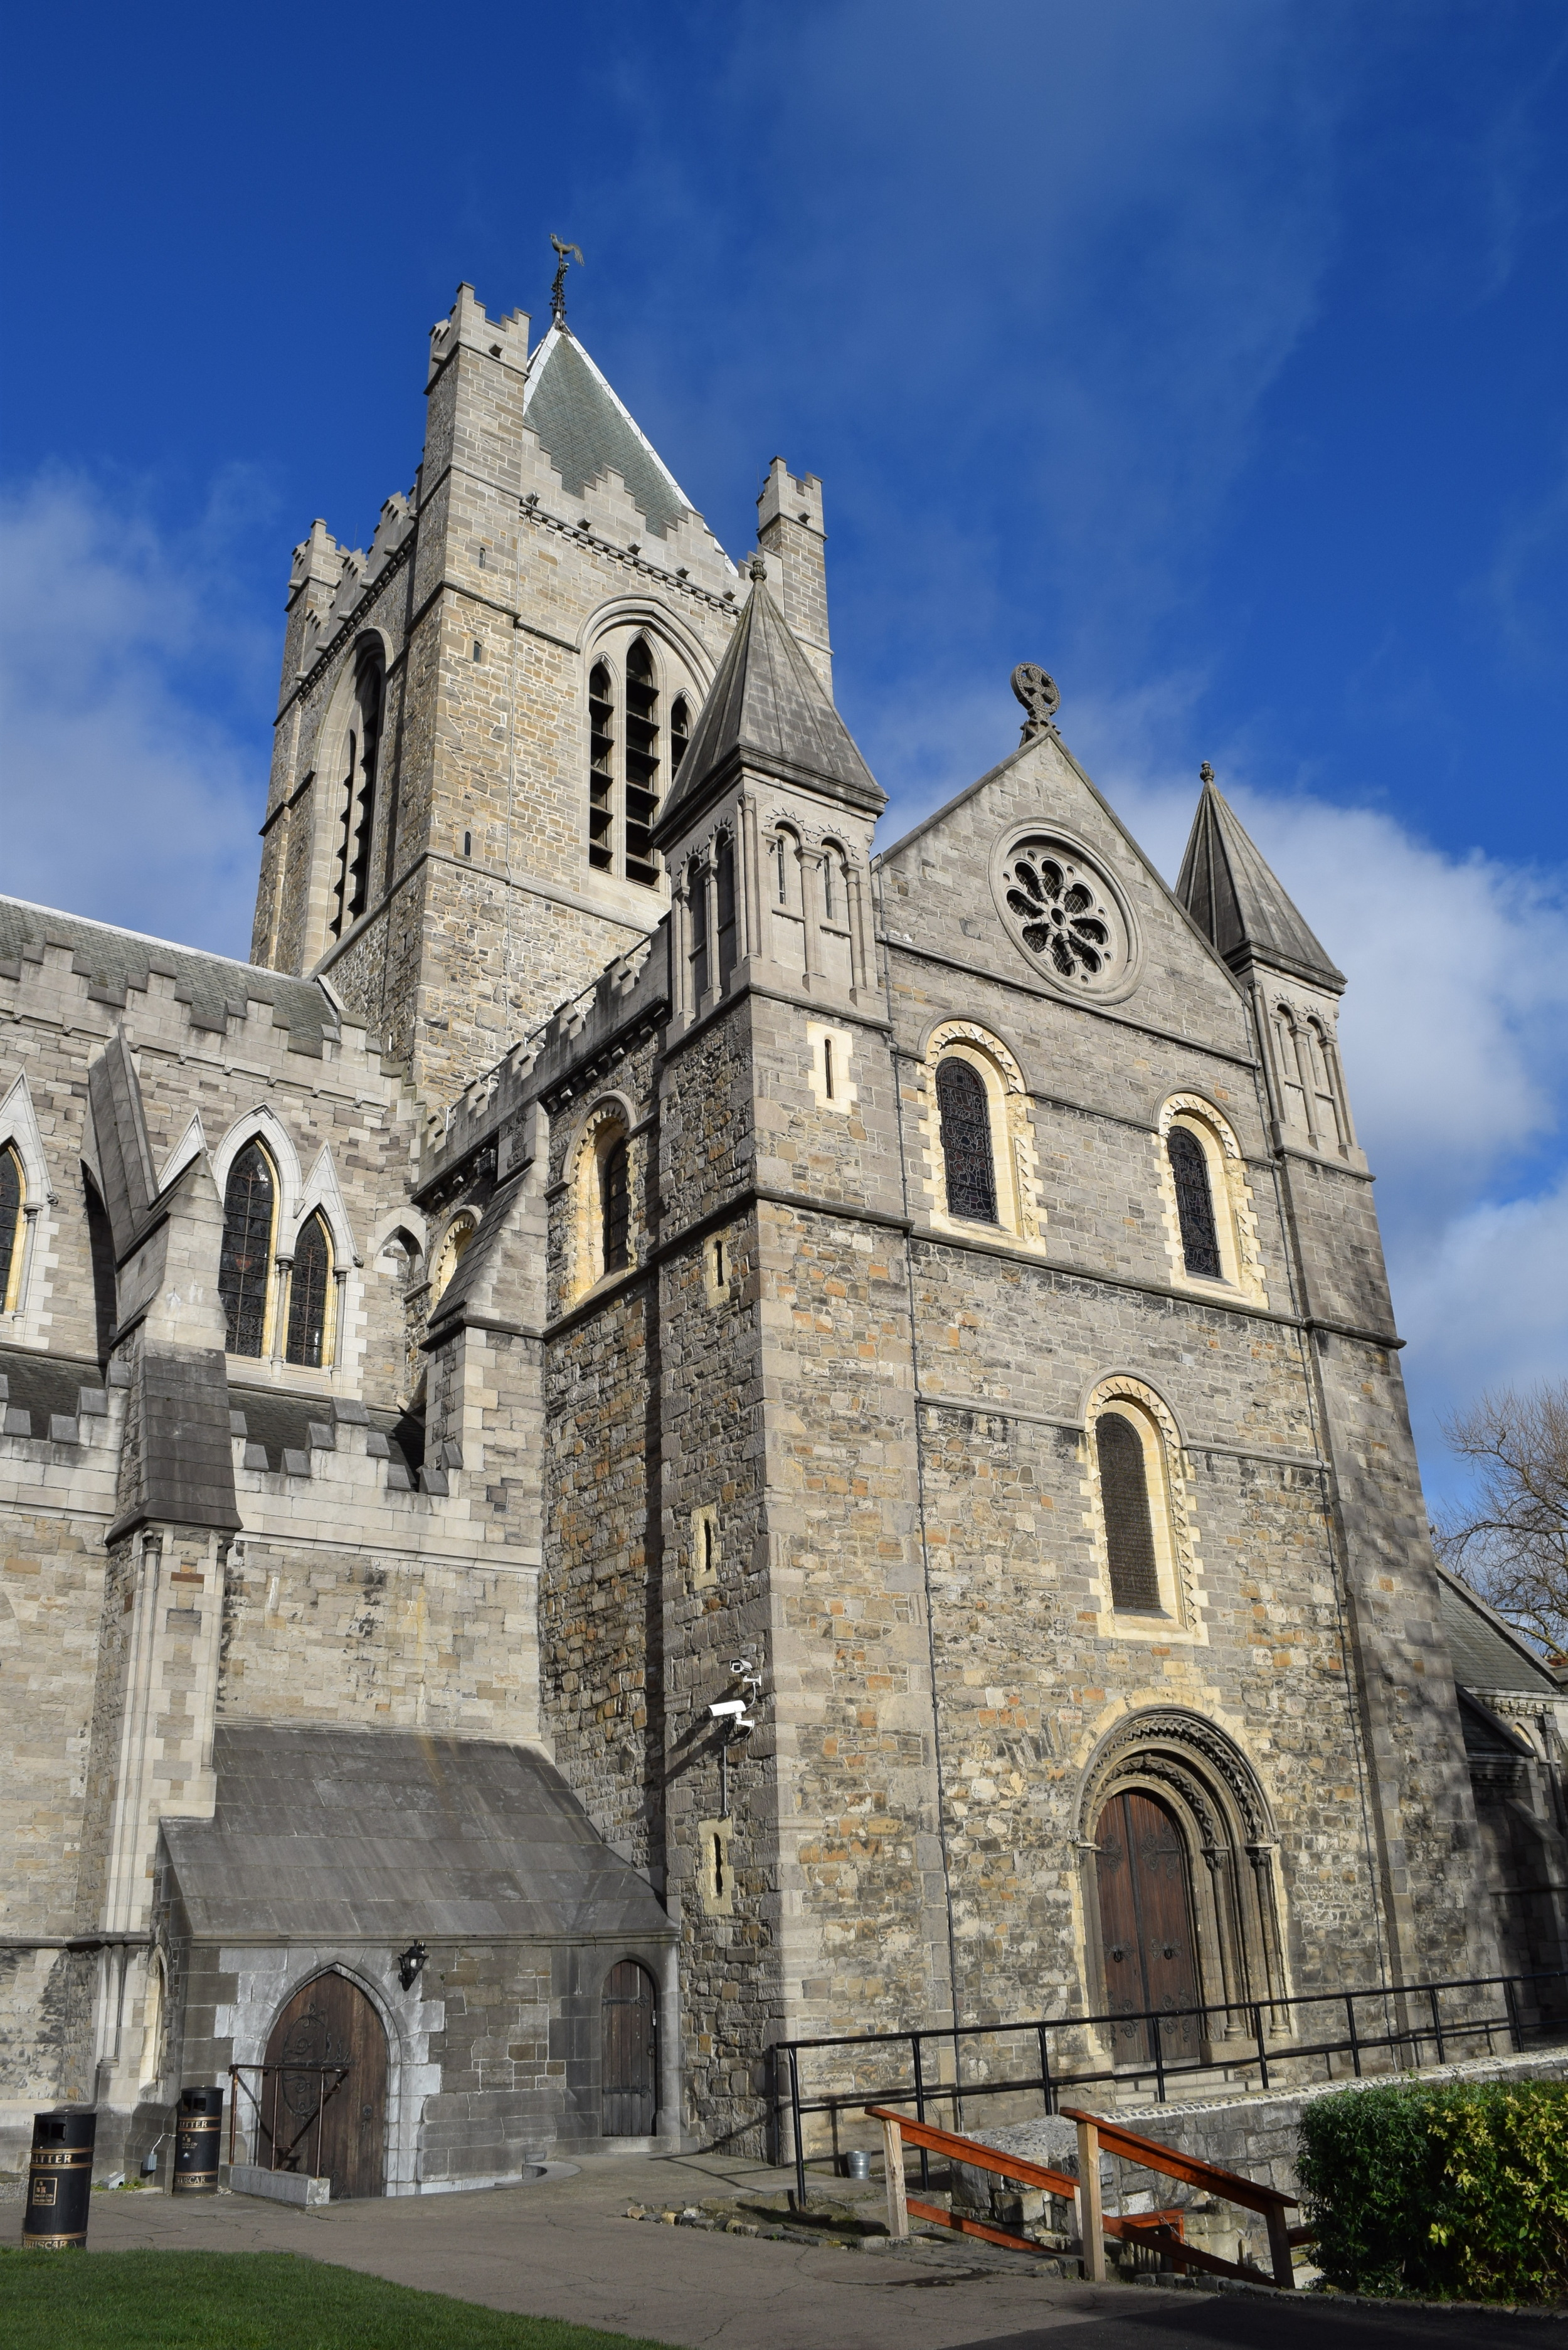 Christ Church Cathedral with a surprising amount of blue sky in the background